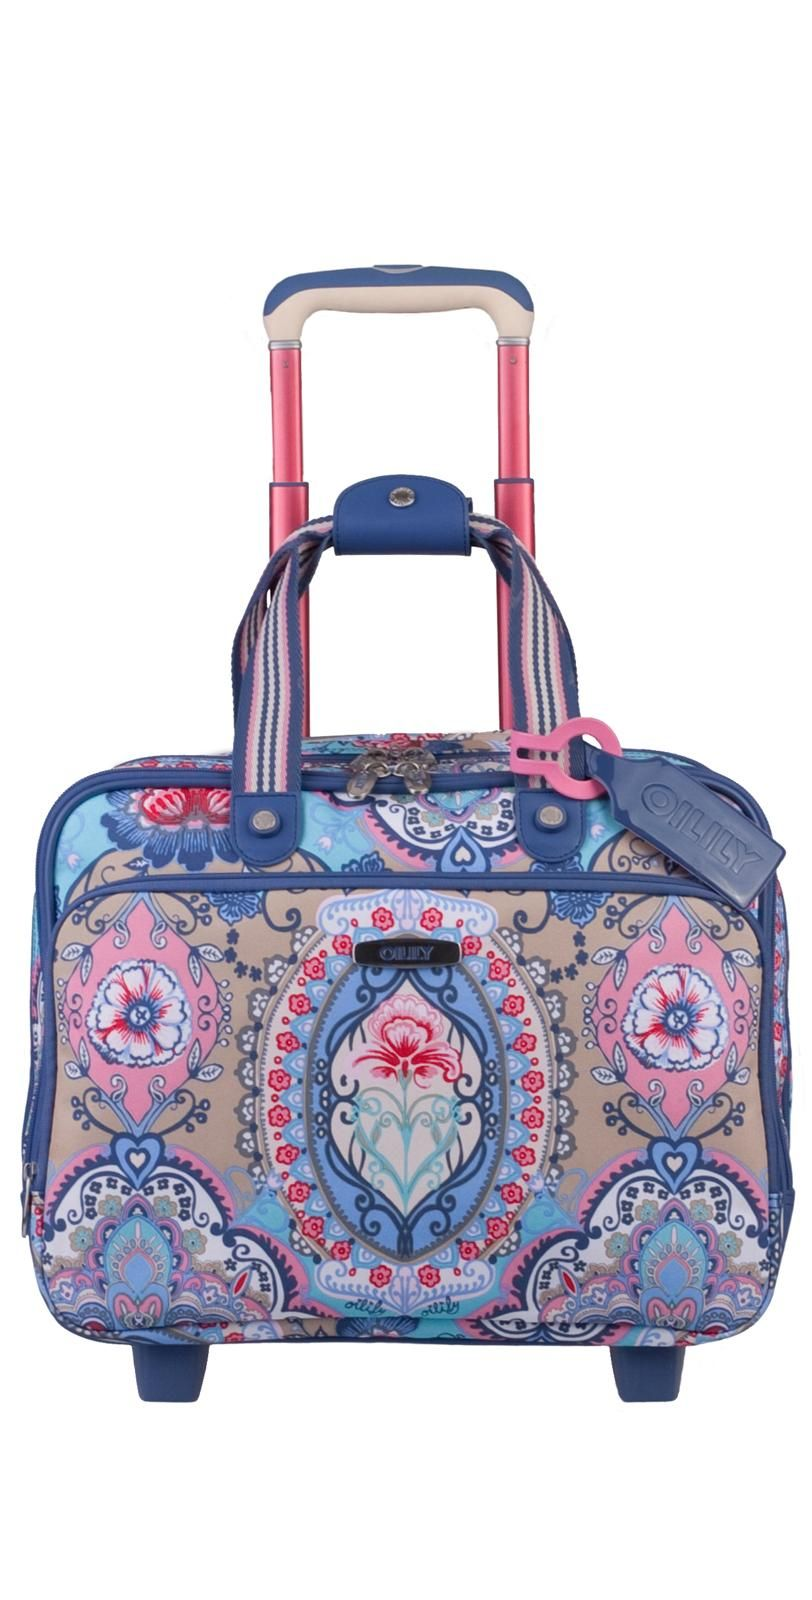 Oilily Travel Lotus Office Bag On Wheels In Blue Main Compartment With Wide Opening For Easy Access Zipper Can Be Secured Lock Not